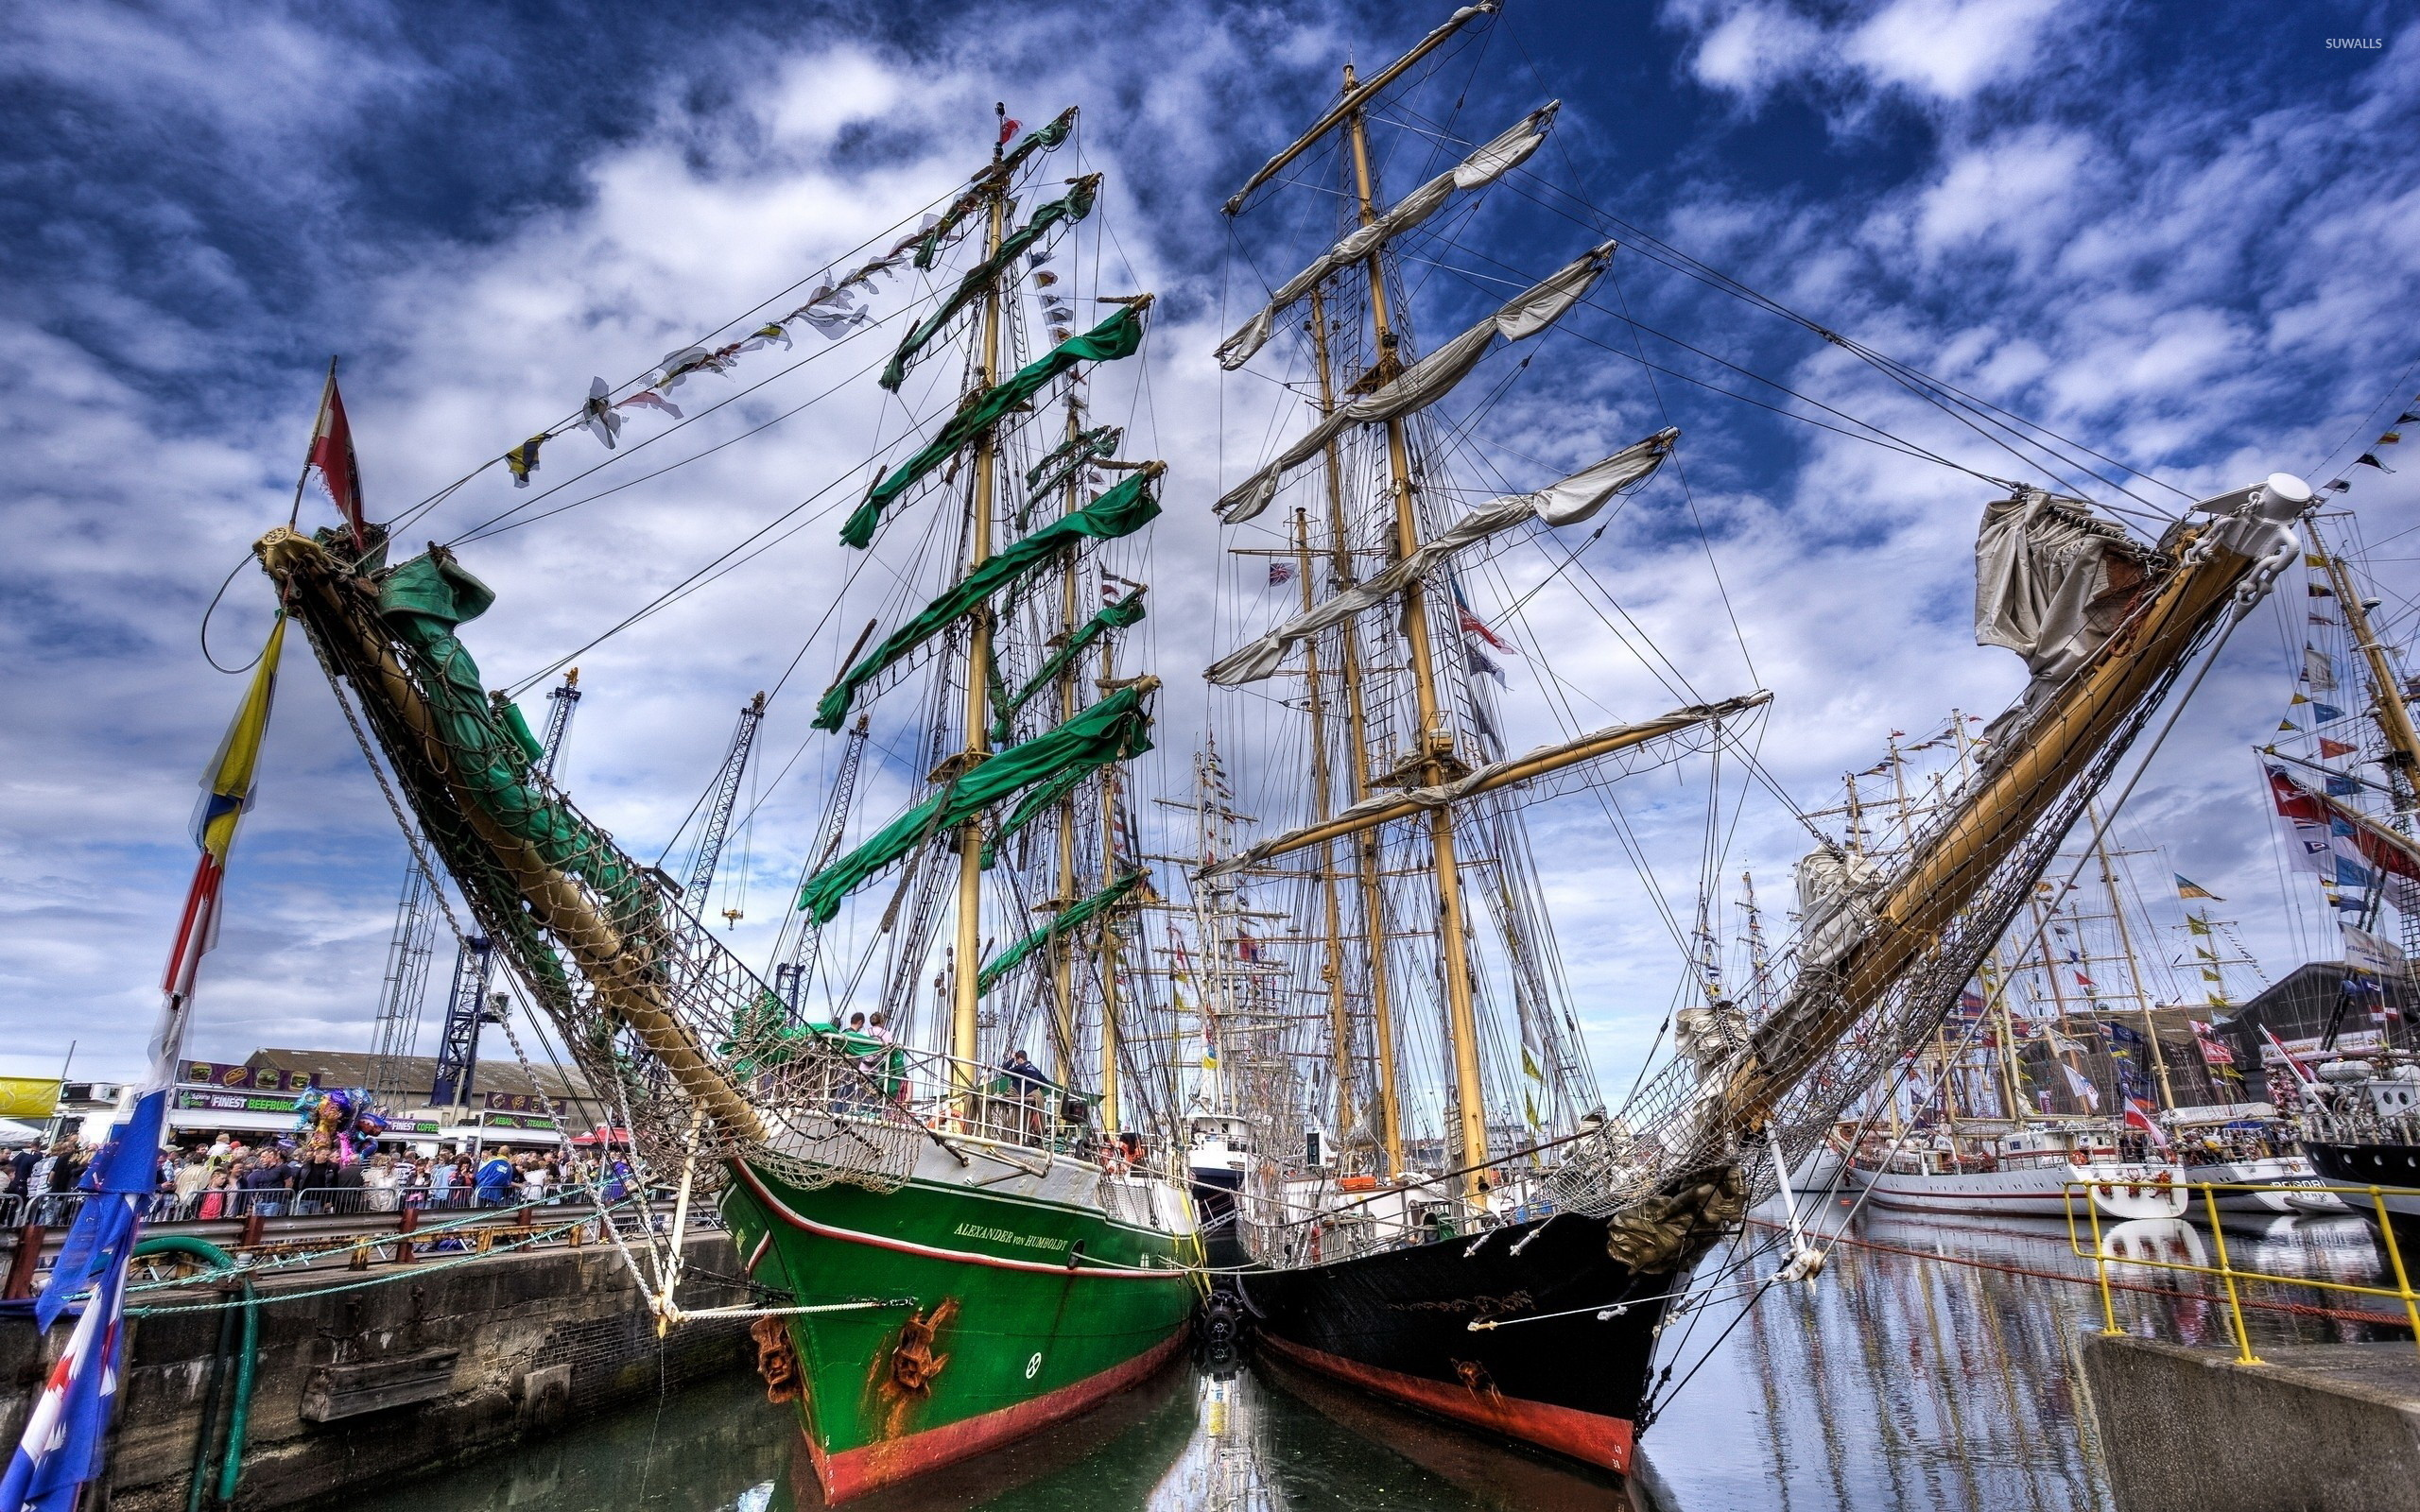 Res: 2560x1600, Sailing ships in the harbor [2] wallpaper